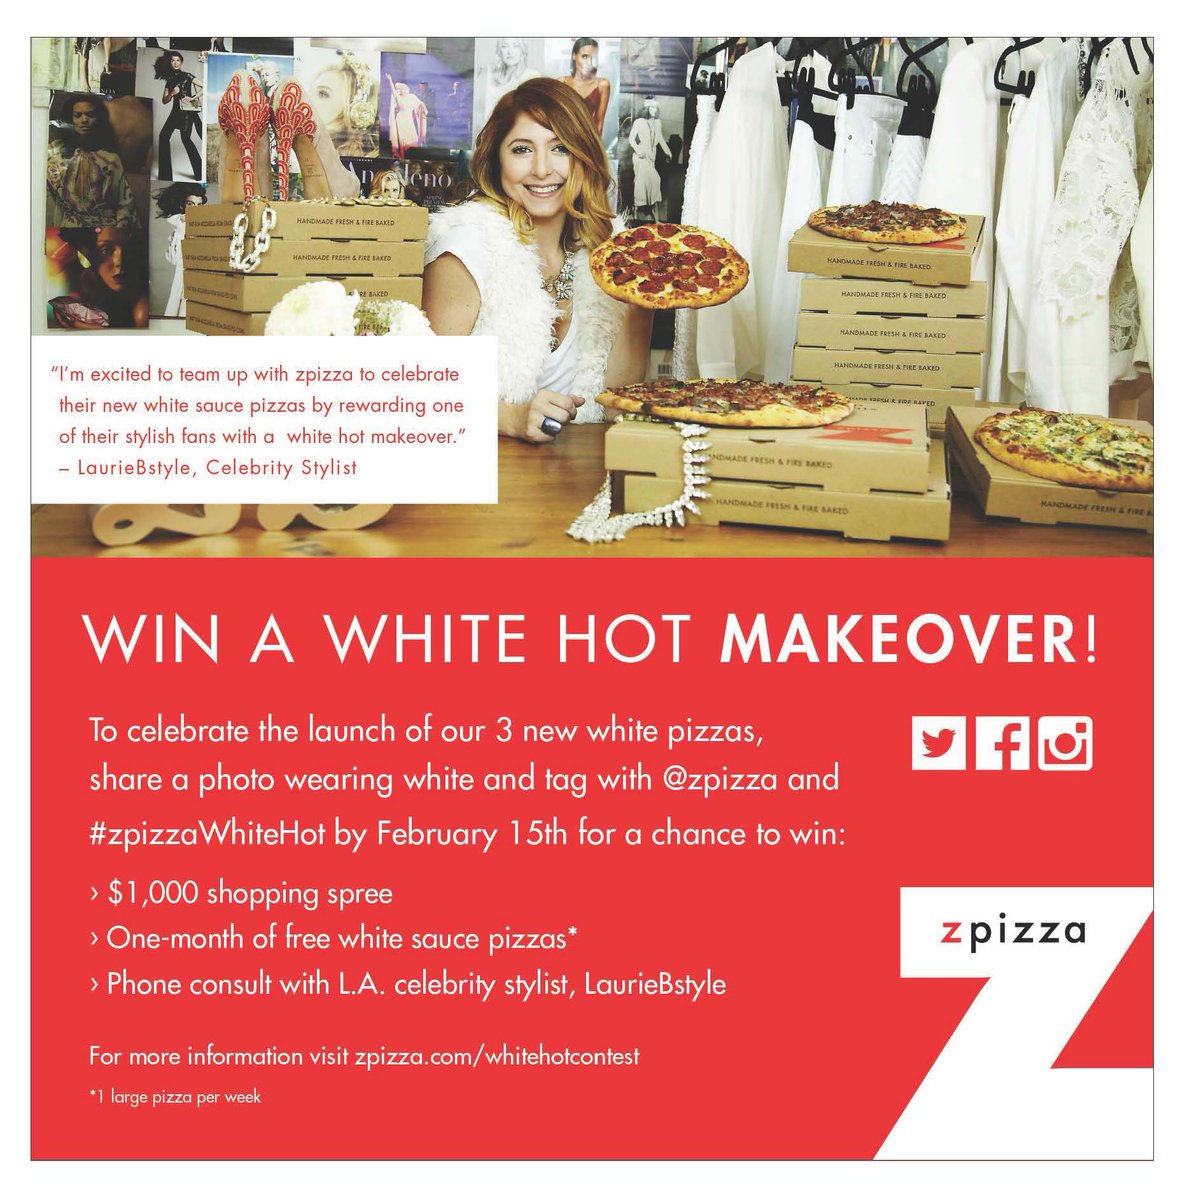 The @zpizza White Hot giveaway is  almost over!!  Have you entered? There's still time!  #zpizzawhite hot https://t.co/d4x5LZPfBY